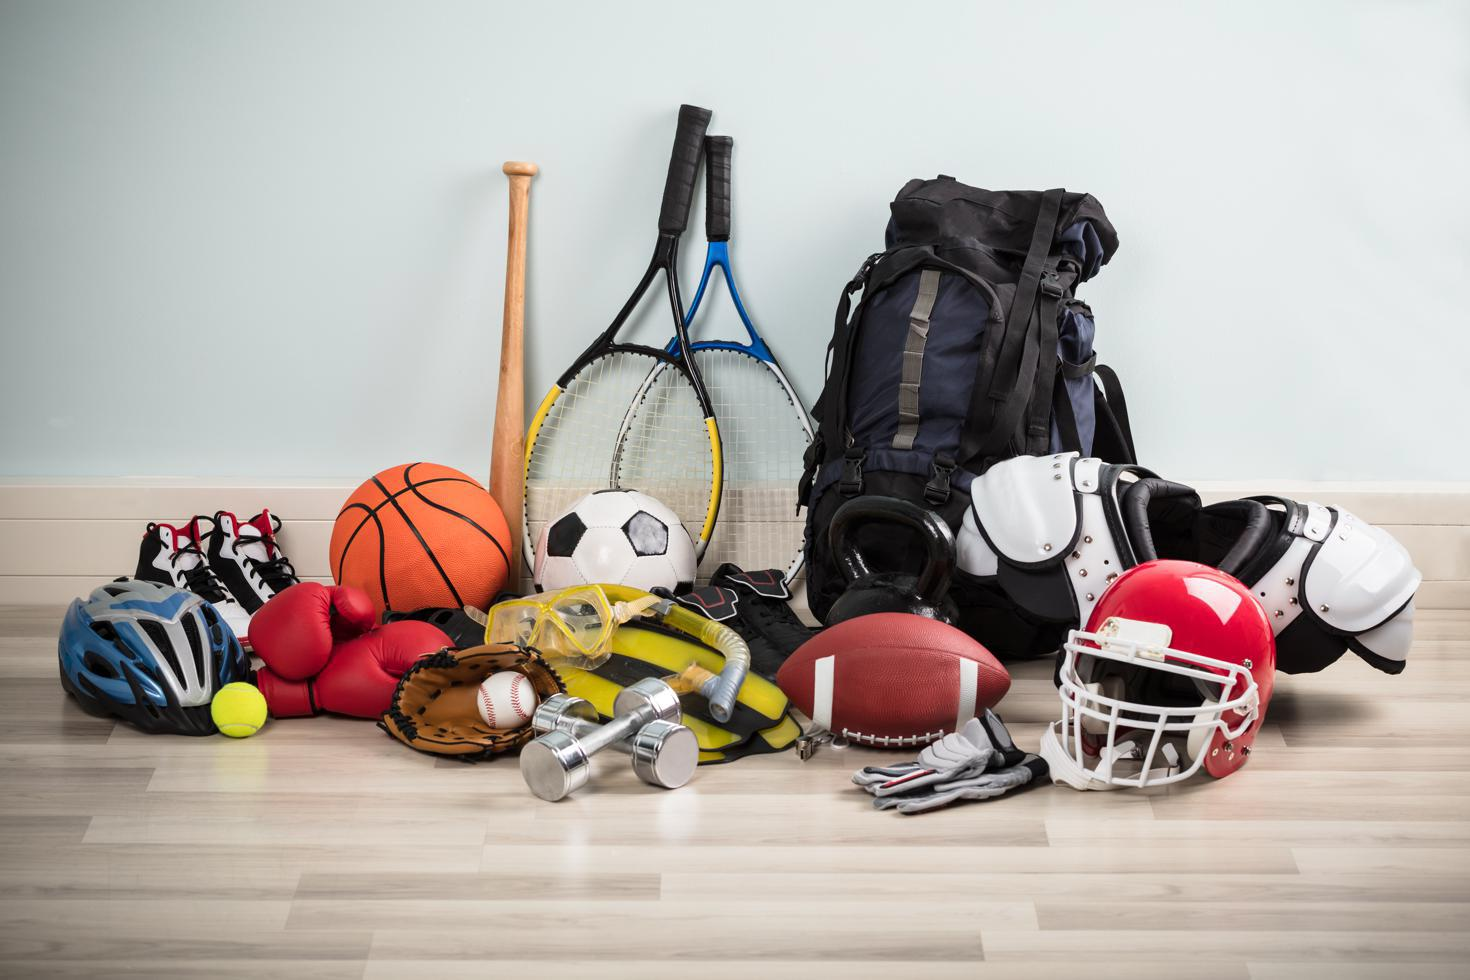 storing sports equipment in self-storage units